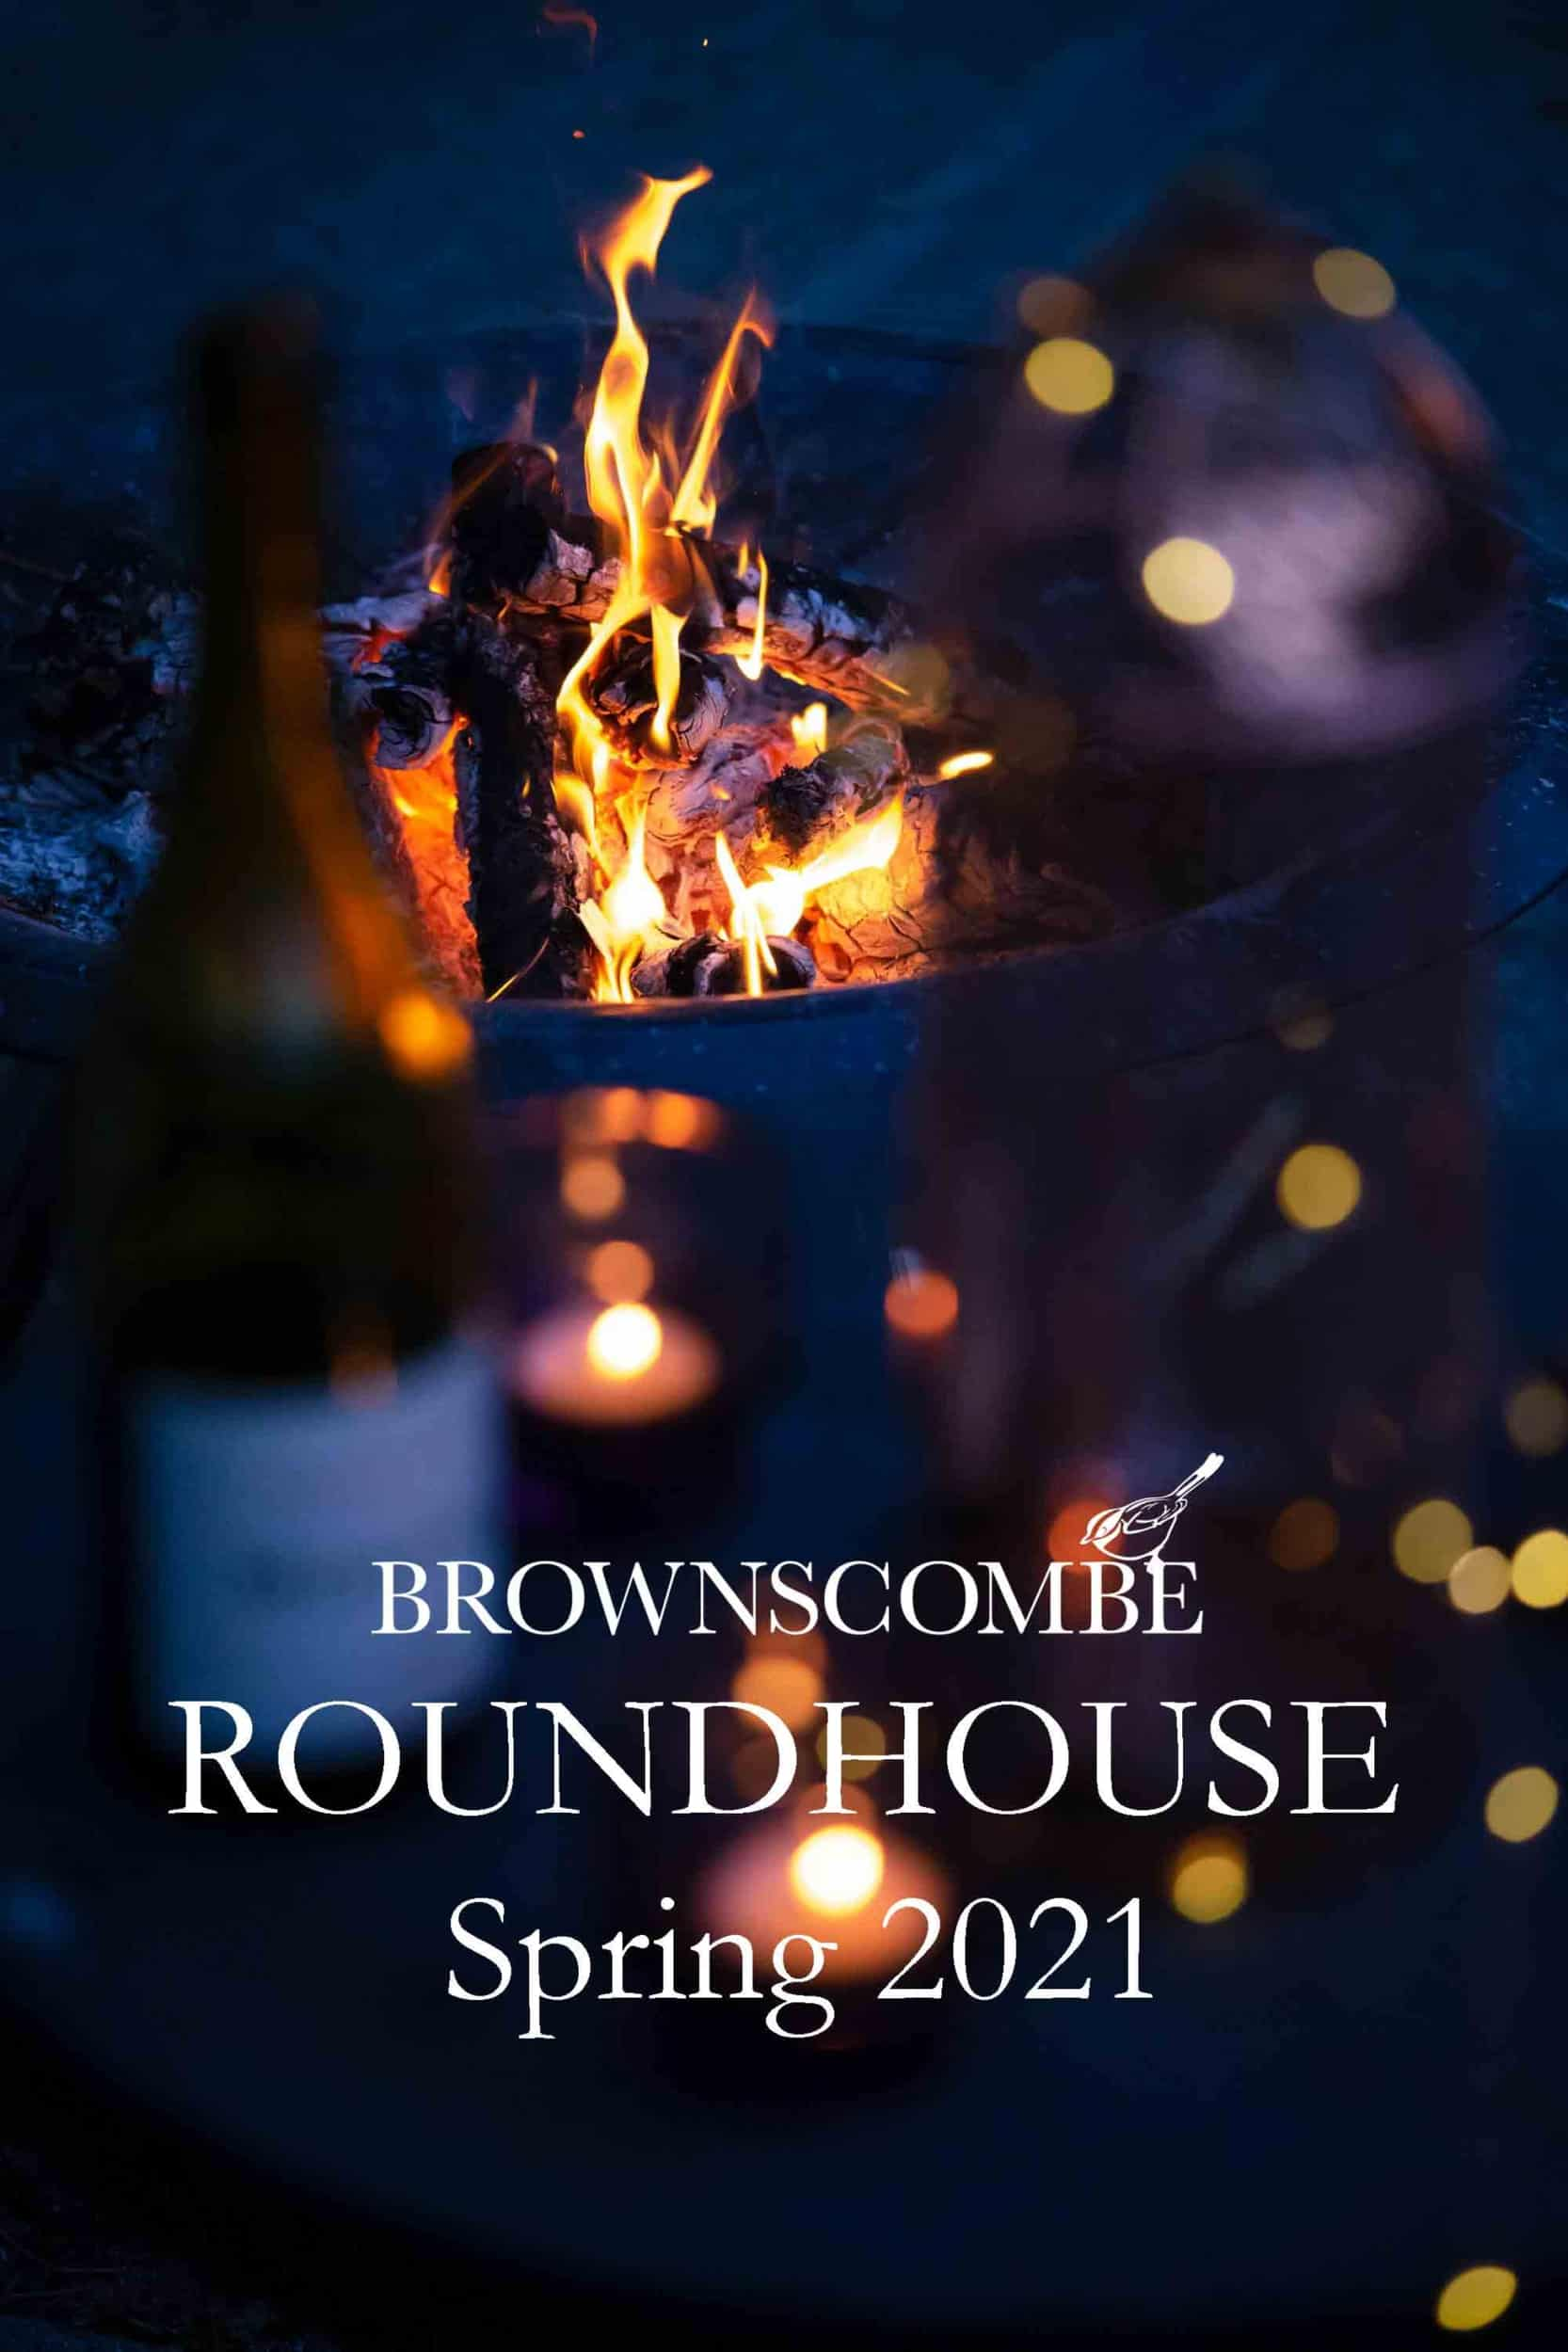 A bottle of wine in front of a firepit Brownscombe Roundhouse Spring 2021